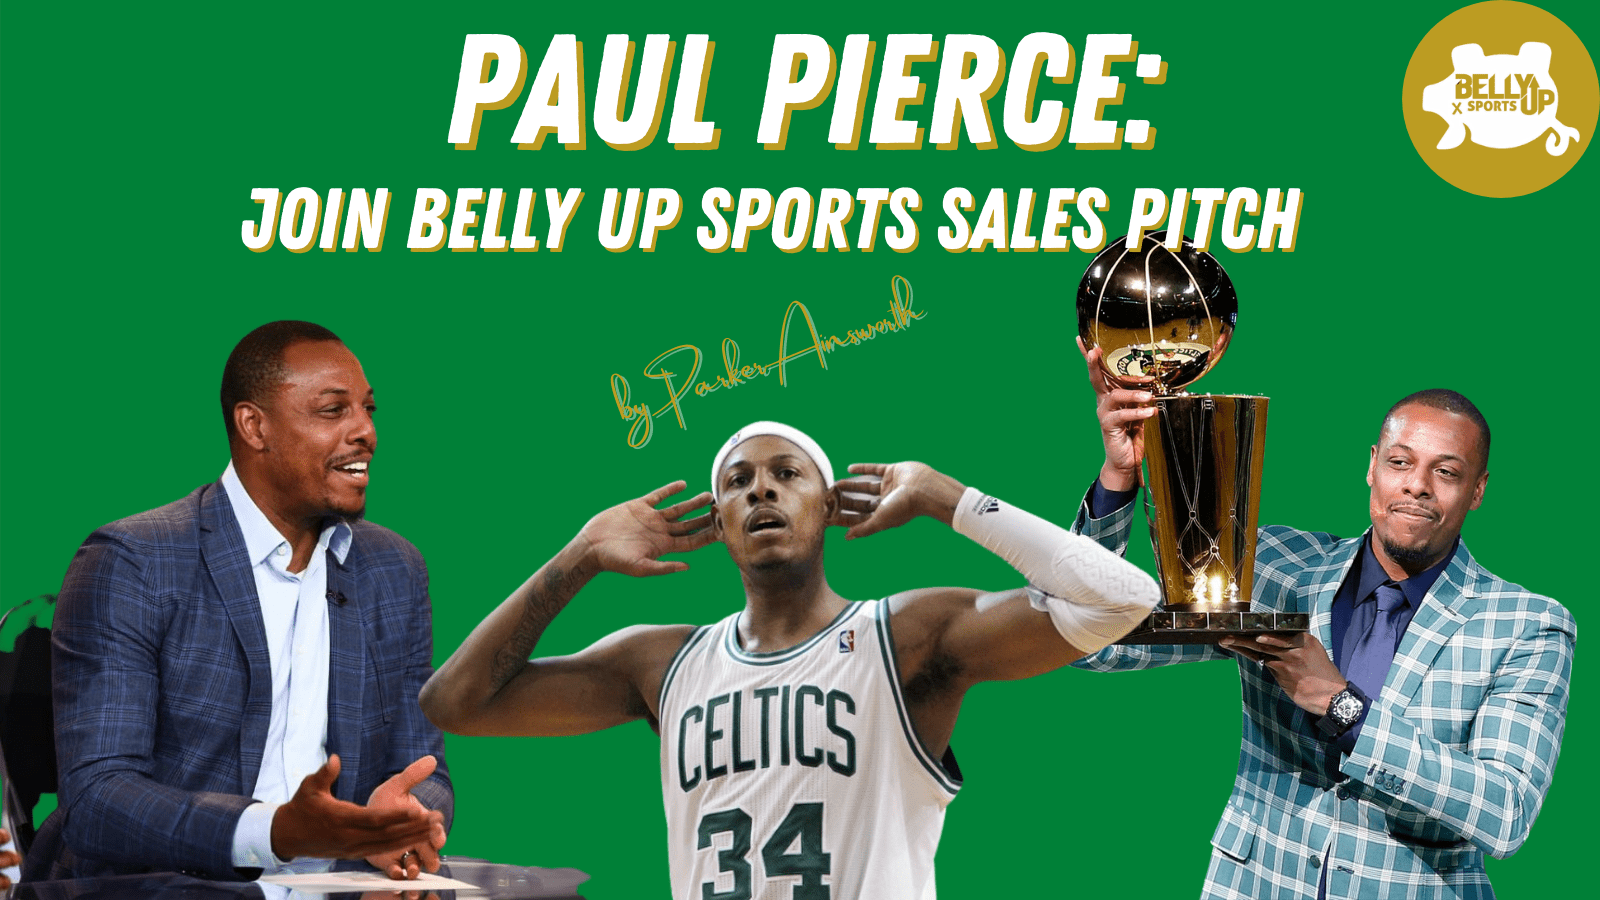 Paul Pierce: Join Belly Up Sports Sales Pitch